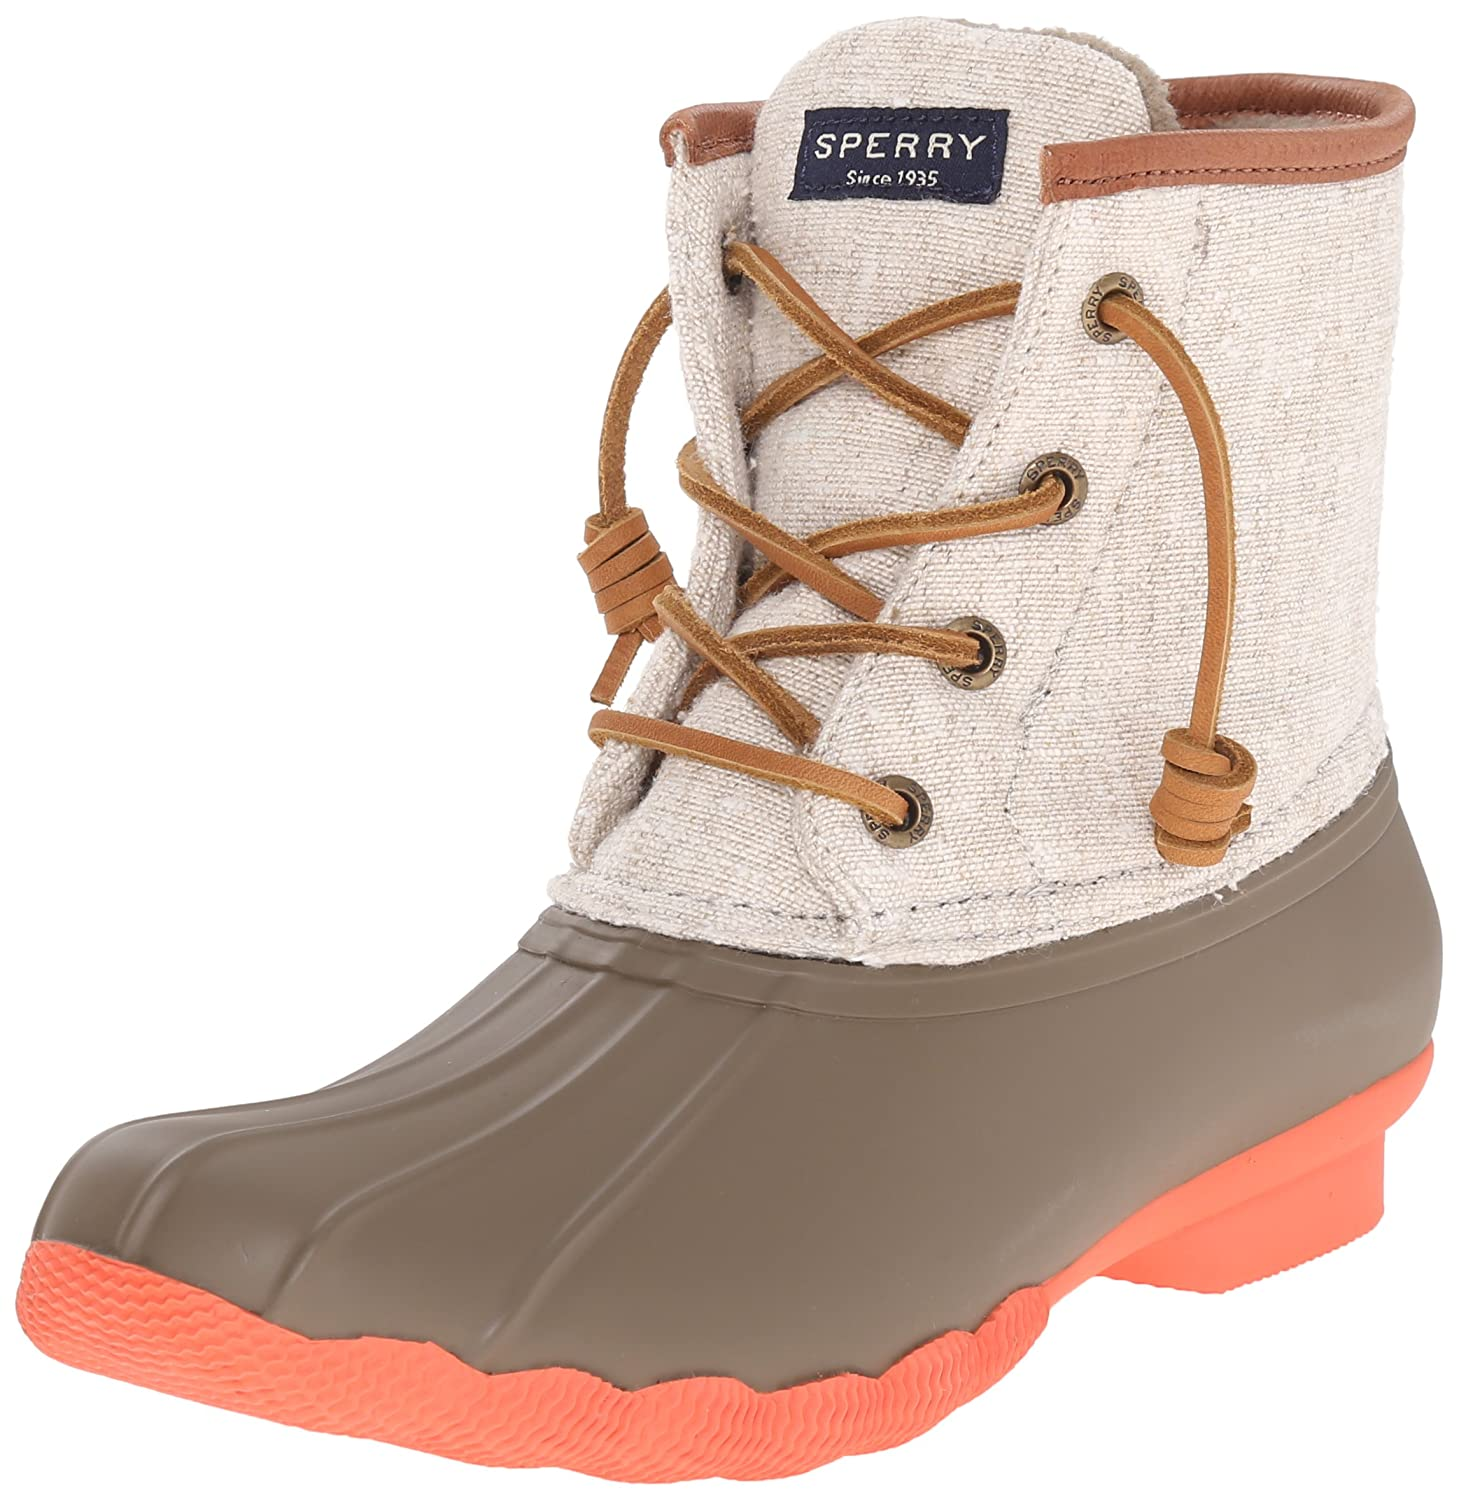 Sperry Top-Sider Women's Saltwater Prints Rain Boot B00VKT2QYS 11 B(M) US|Taupe/Natural